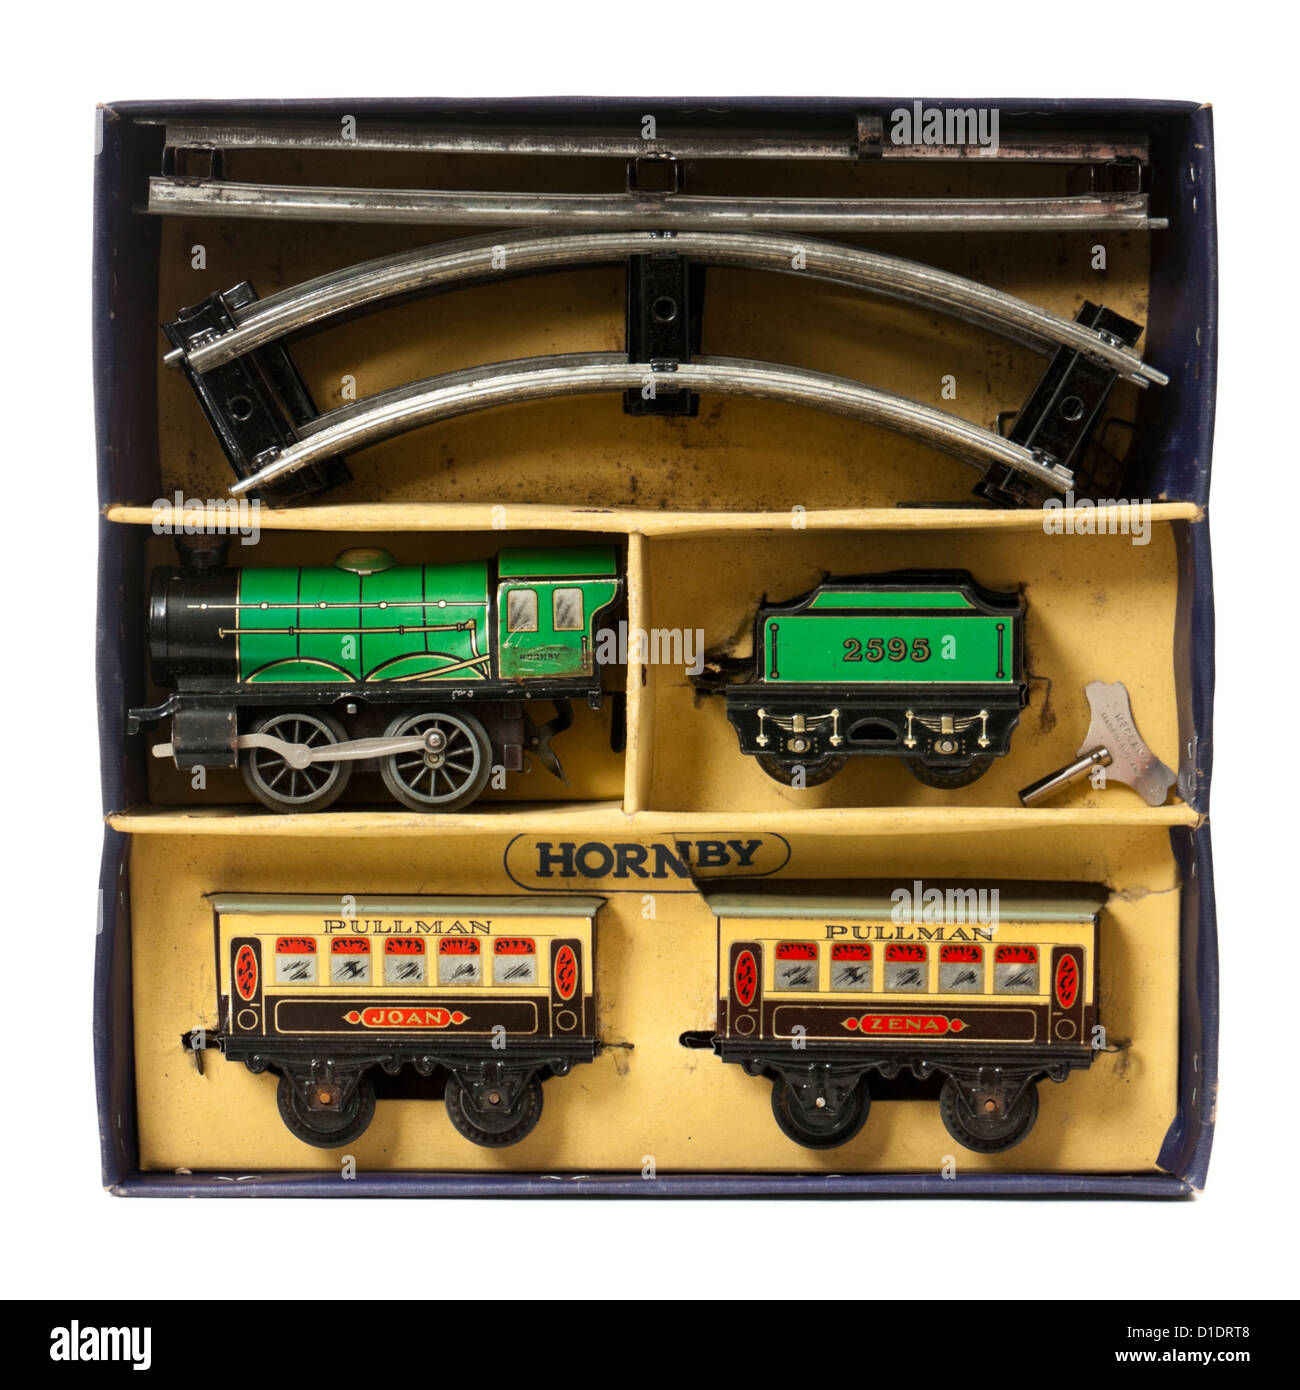 Rare 1950's Hornby clockwork M0 Passenger Train Set with green tinplate locomotive and tender and Pullman carriages - Stock Image